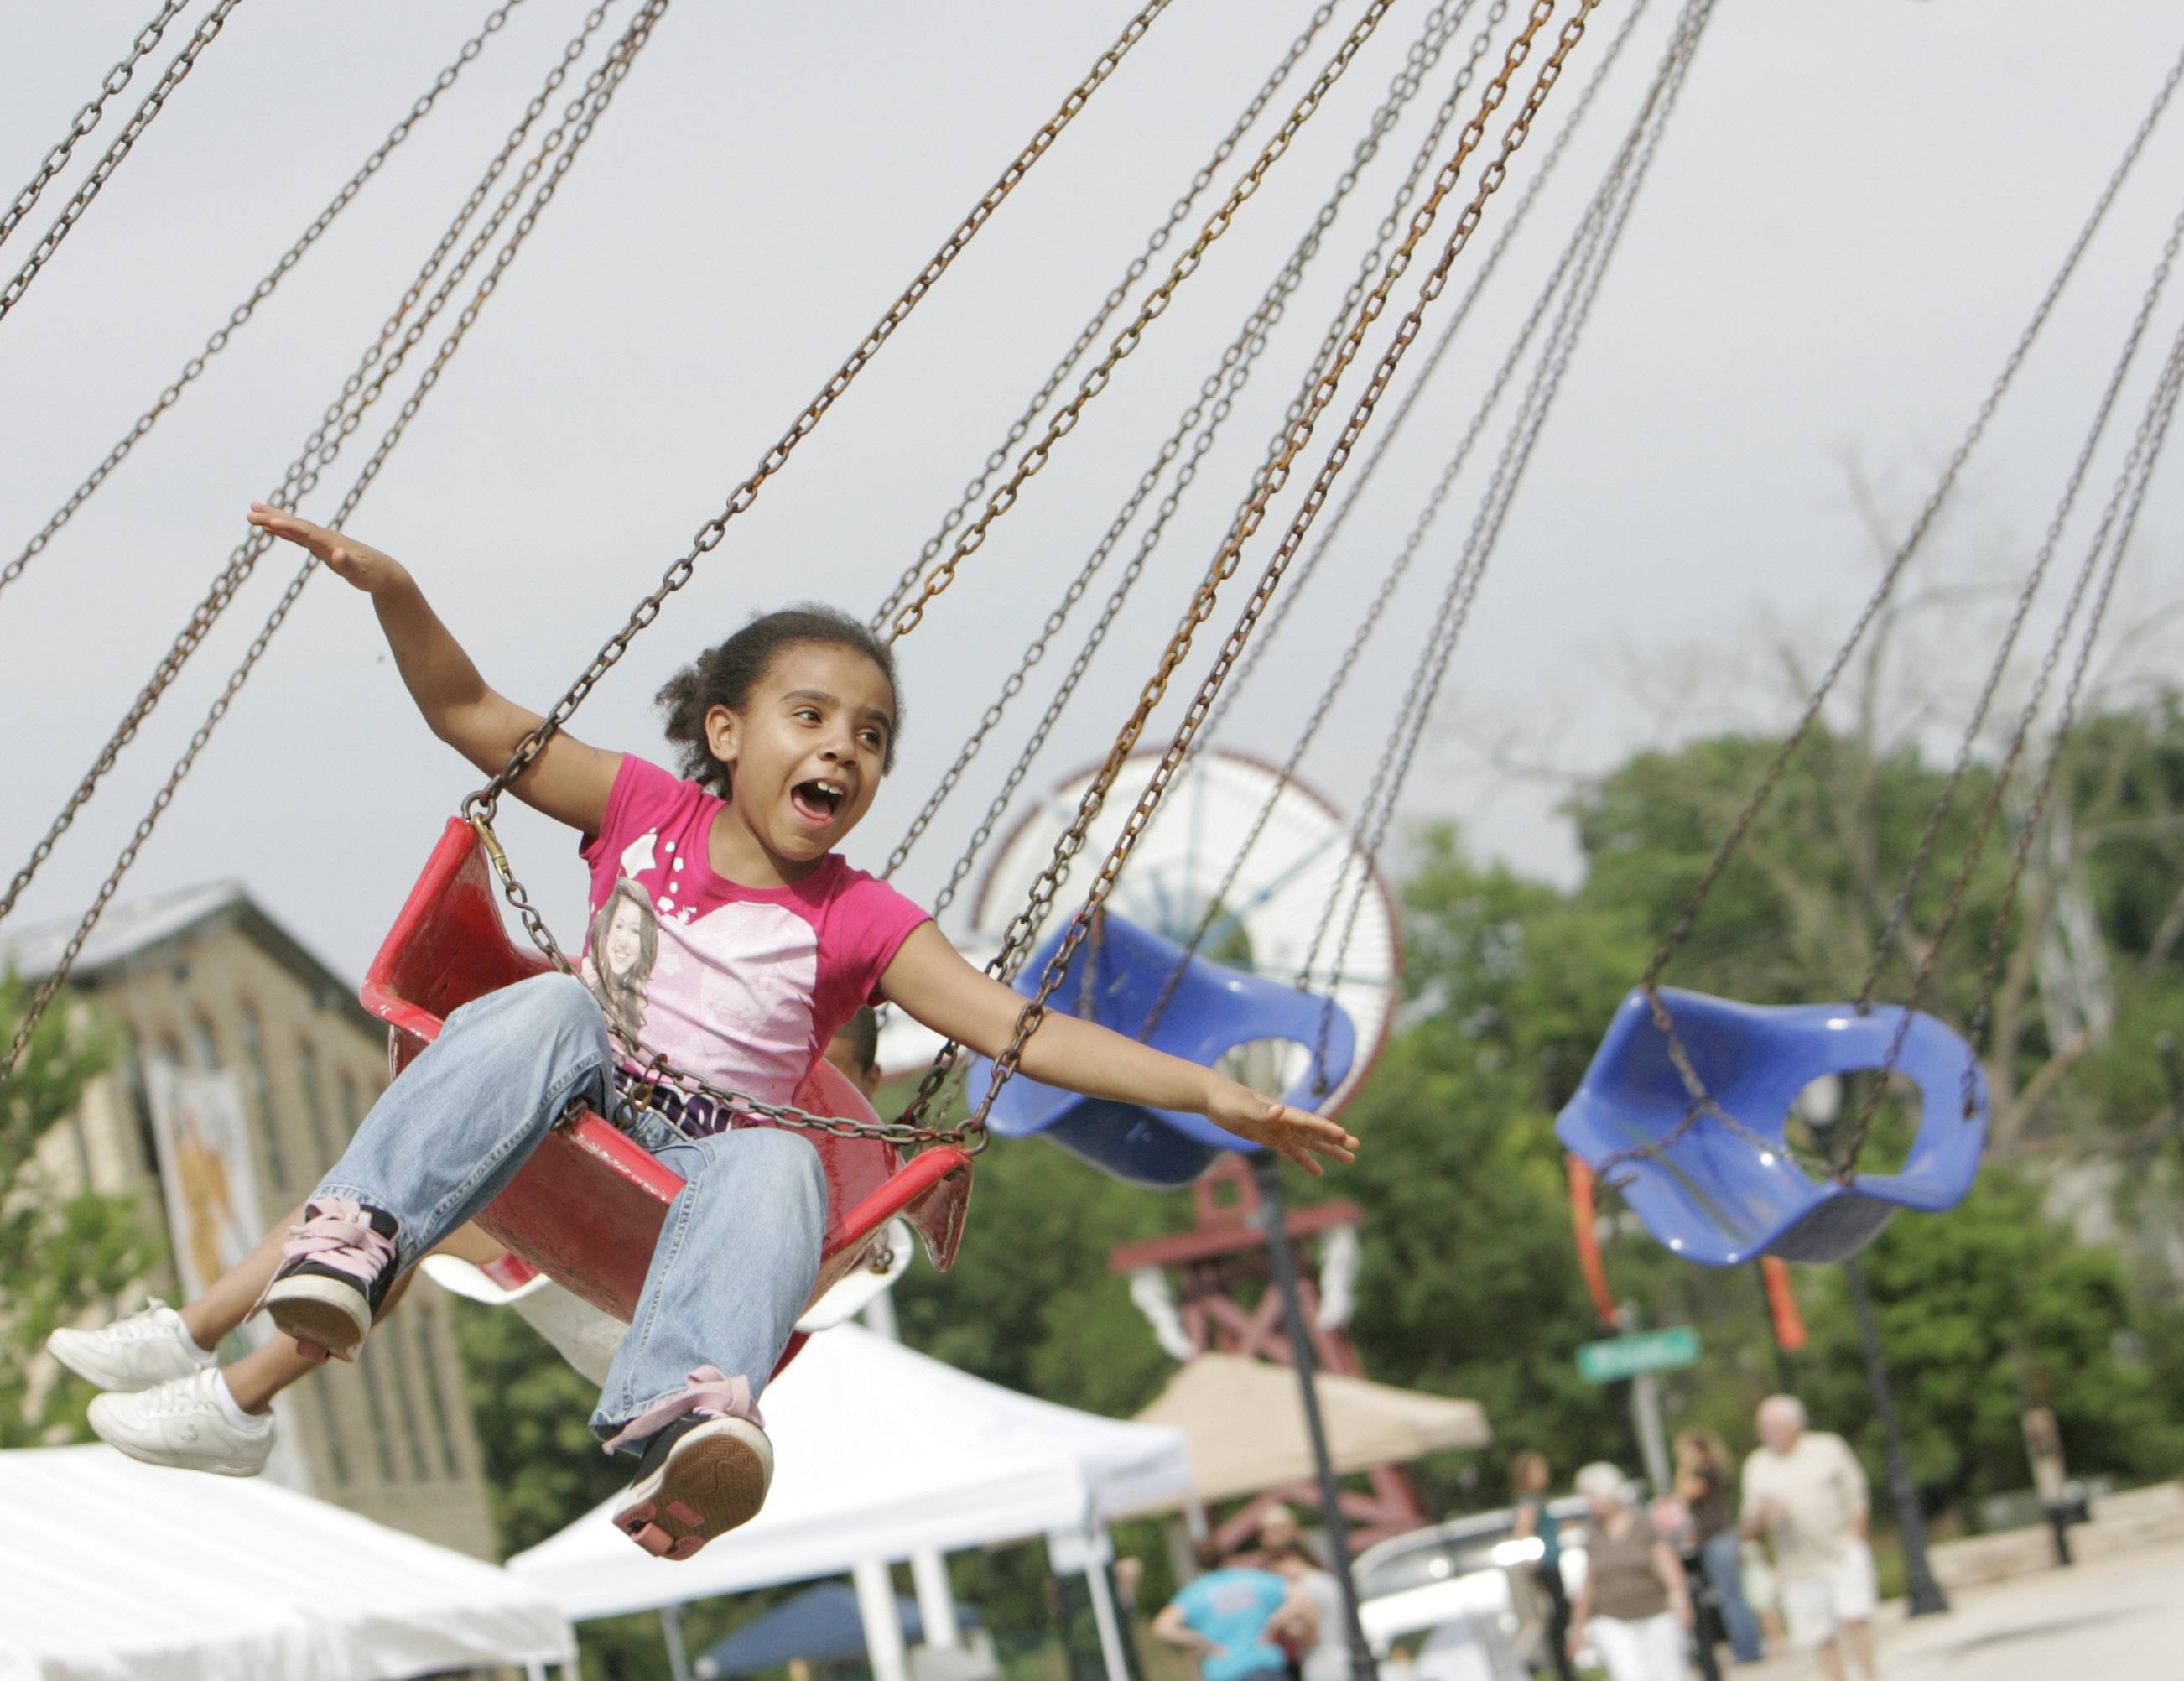 Tykeya Munger, 8, of Aurora enjoys a carnival ride at a previous Batavia's Windmill City Festival. This year's fest opens 6 p.m. Thursday and runs through Sunday, July 10-13. Find a full schedule of festival events on Page 3.